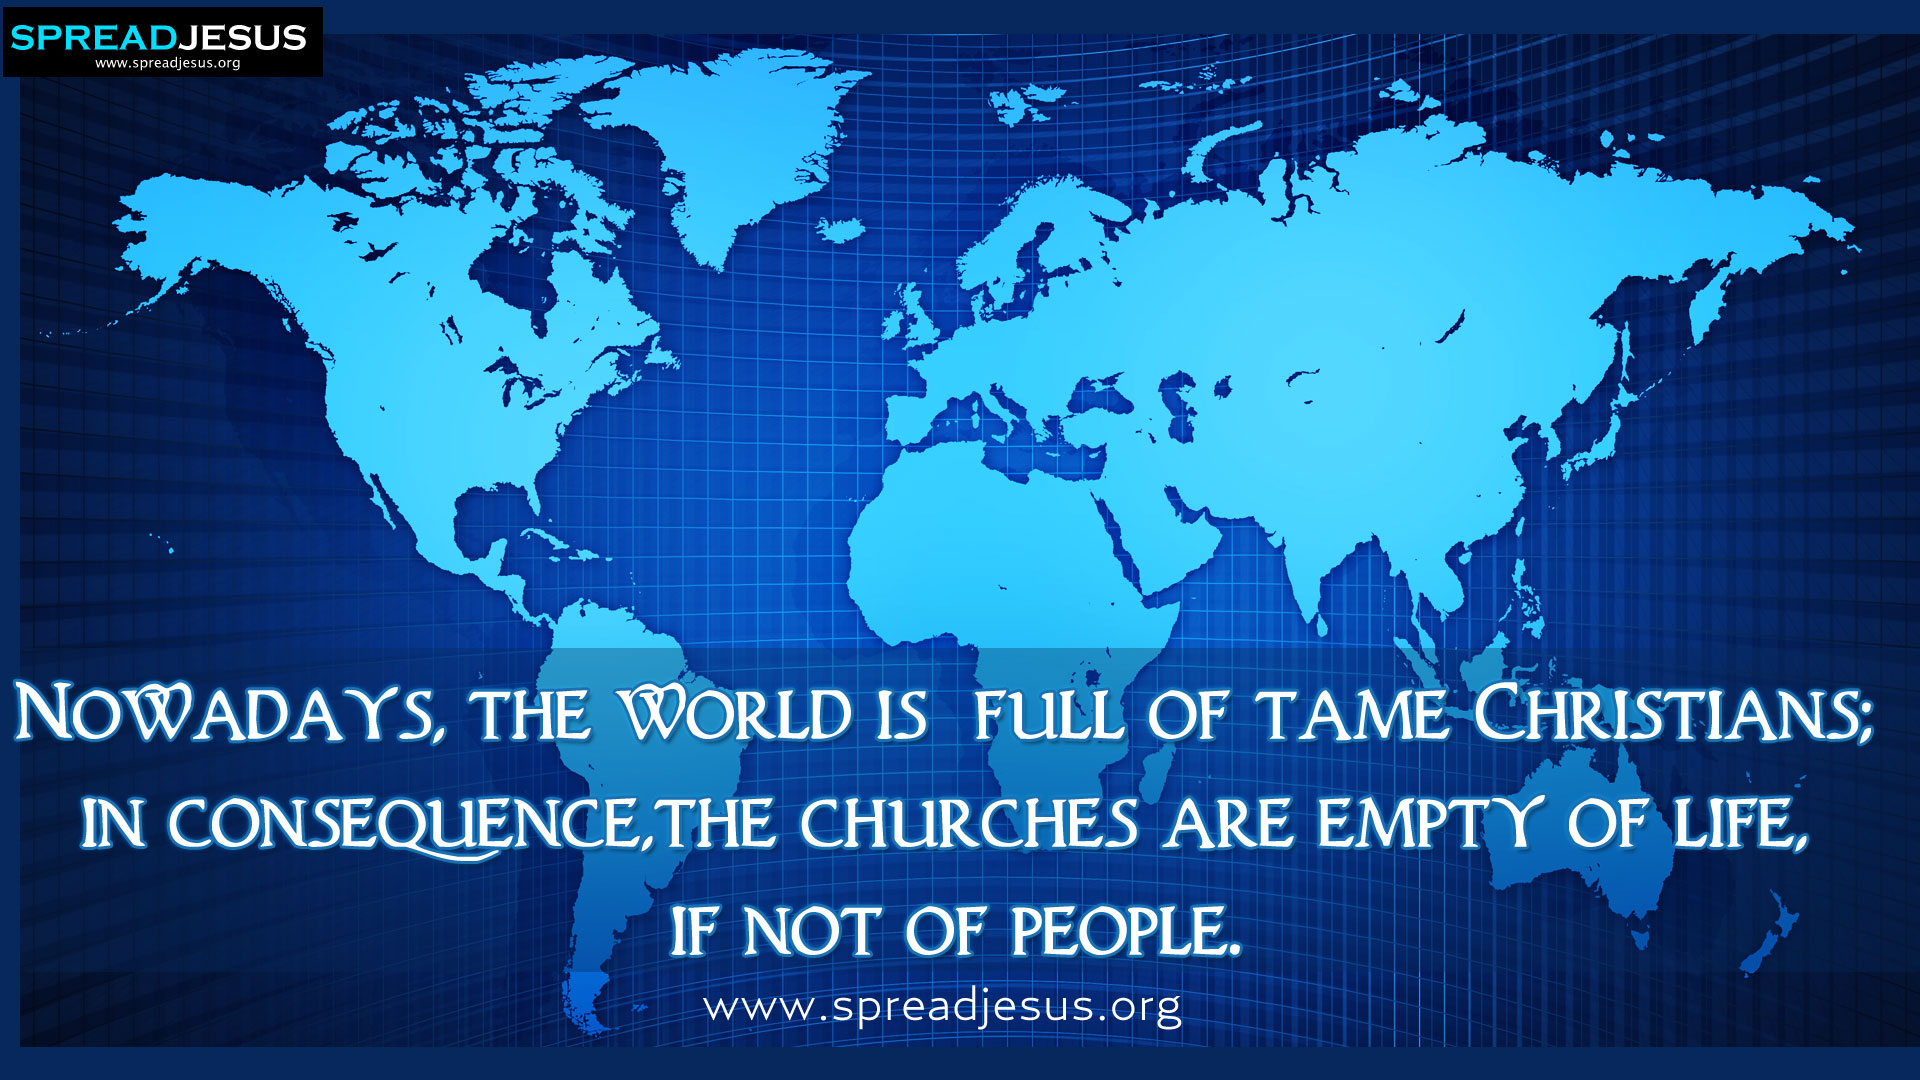 The world is full of tame Christians